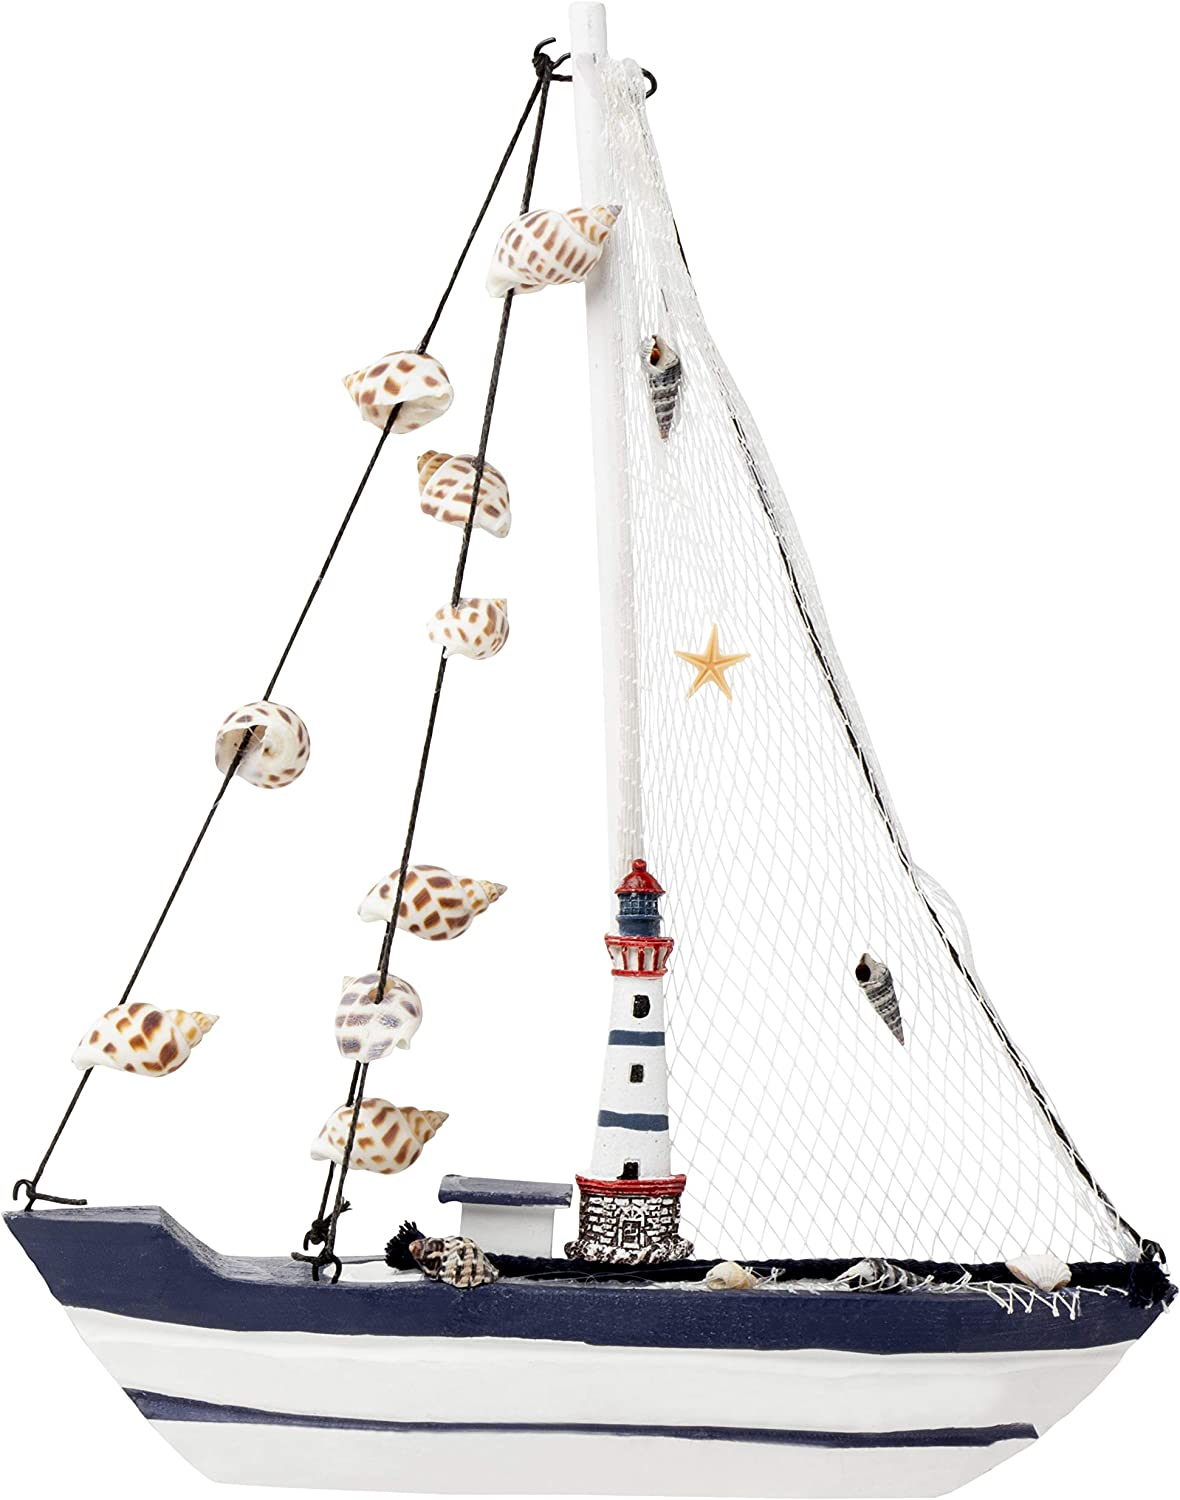 Juvale Sailboat Model Decoration - Wooden Ship Sailing Boat Home Decor, Beach Nautical Theme Lighthouse and Seashells, Blue White, 10.25 x 12.75 x 1.75 inches